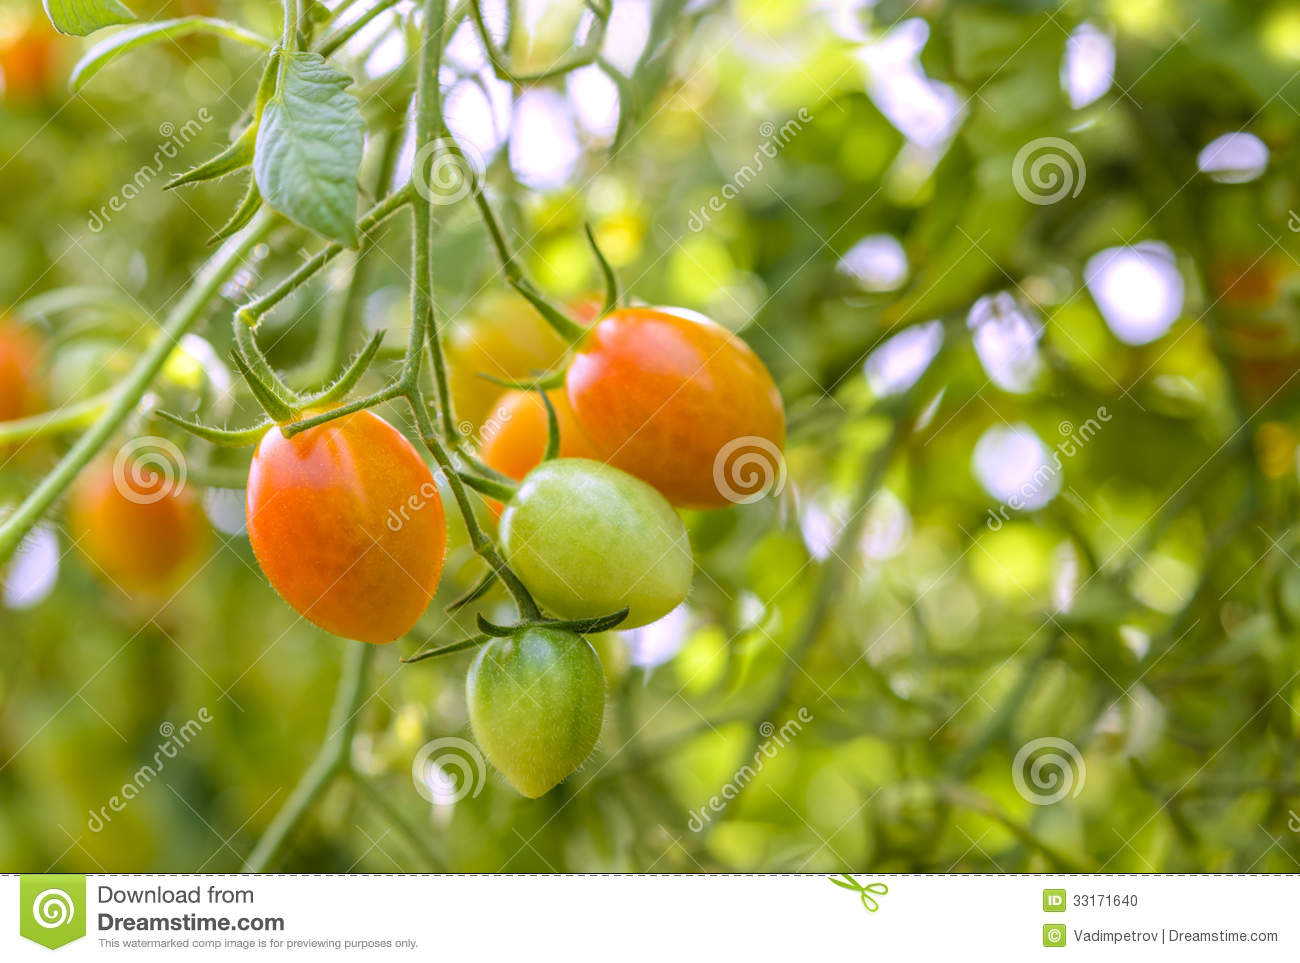 Center For Crop Diversification Growing And Marketing Closeup Of Growing Grape Tomatoes Stock Photo Image